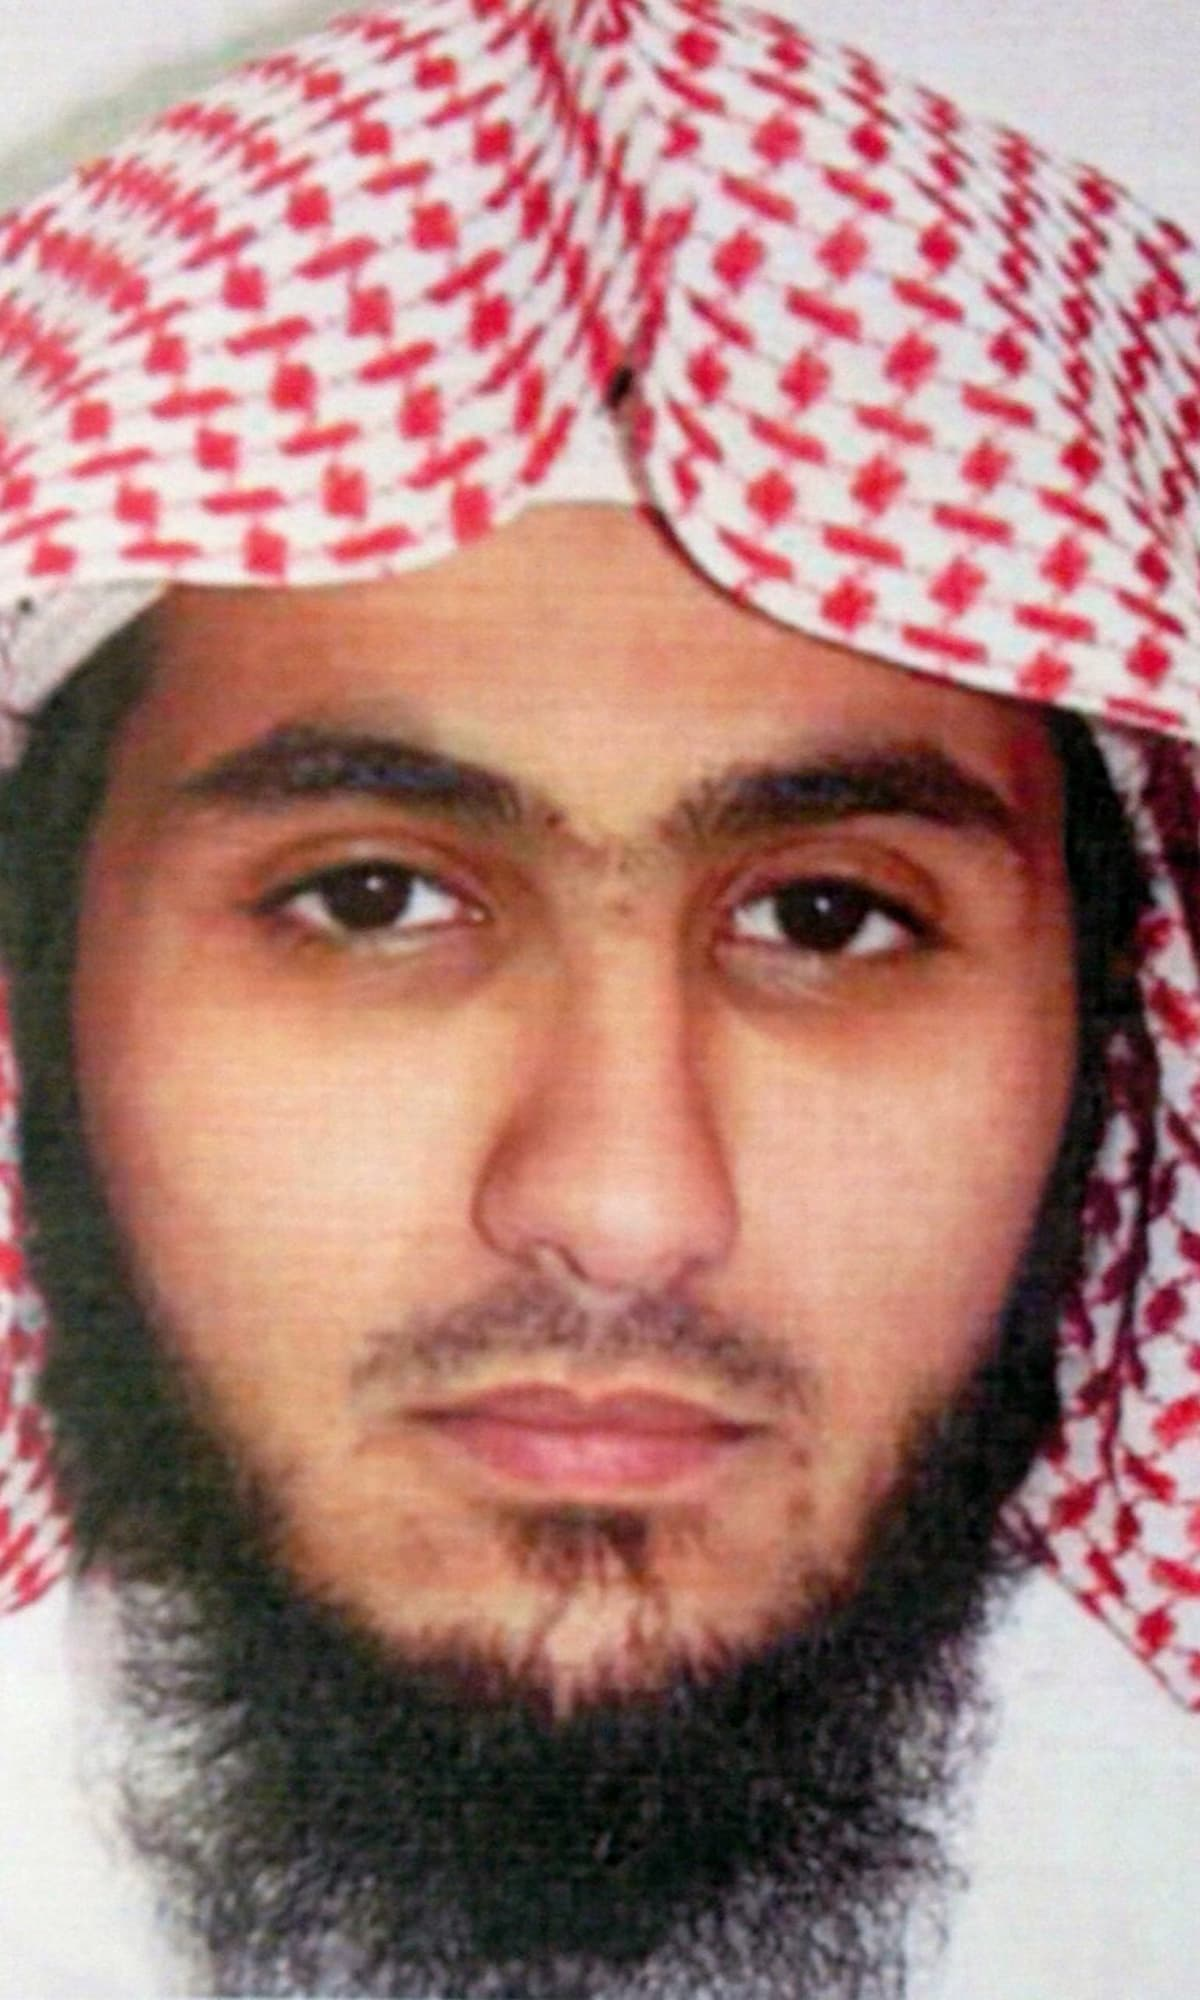 This undated photo released by Kuwait News Agency, KUNA, Sunday, June 28, 2015, shows Fahad Suleiman Abdulmohsen al-Gabbaa, identified as a Saudi citizen who flew into the Gulf nation just hours before he blew himself in an attack on one of Kuwait's oldest Shia mosques during Friday prayers, that killed over two dozen people and wounded over 200.– AP